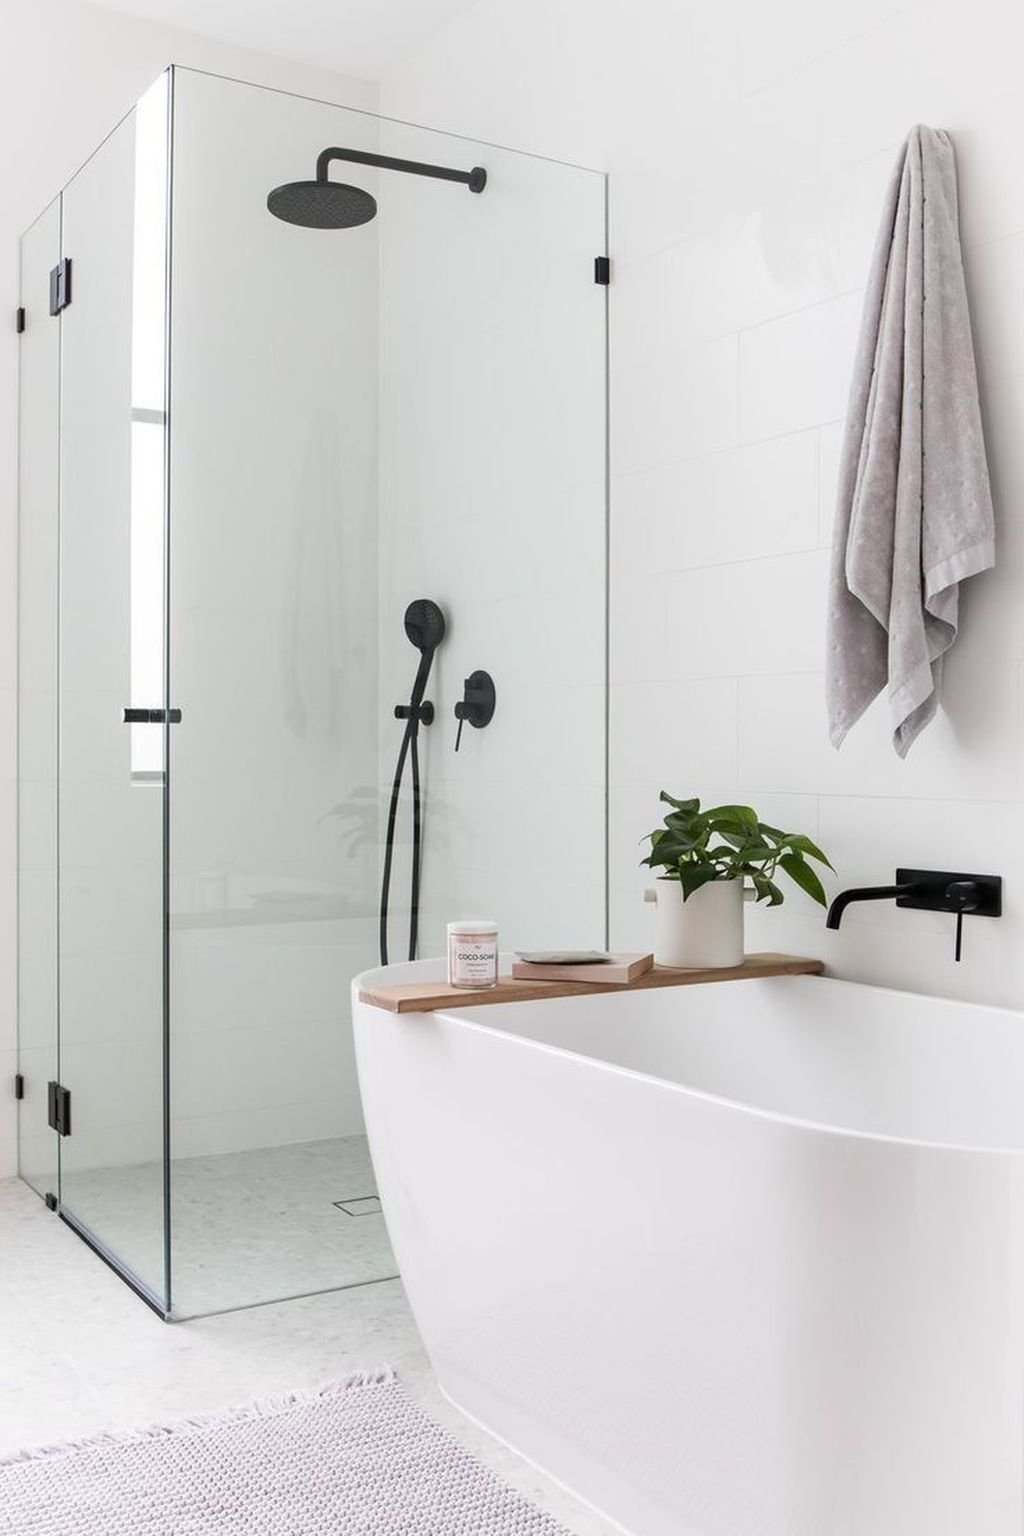 Captivating Bathtub Designs Ideas You Must See38